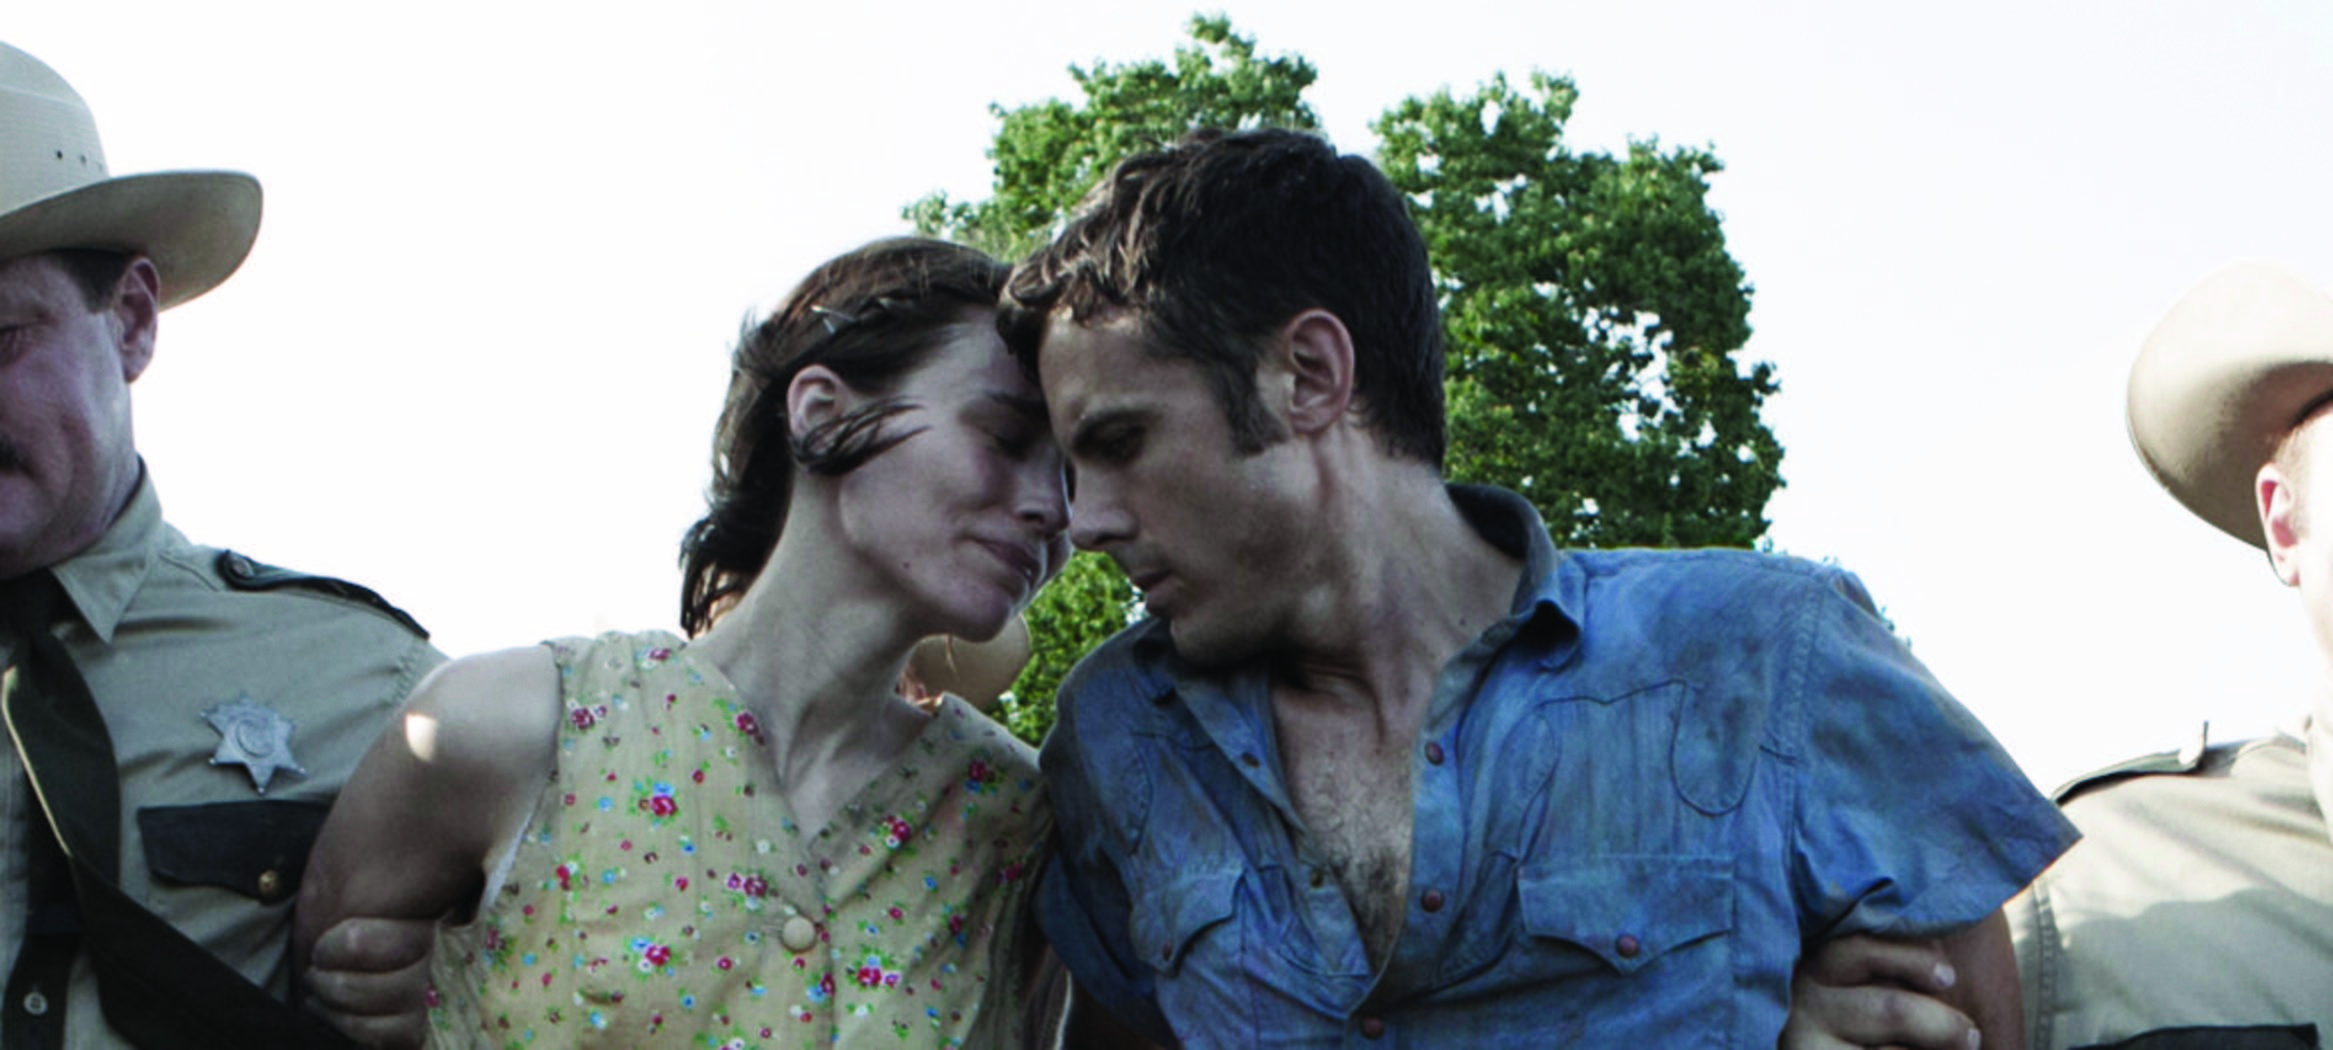 Ain't Them Bodies Saints-Official Poster Banner PROMO-27MAIO2013